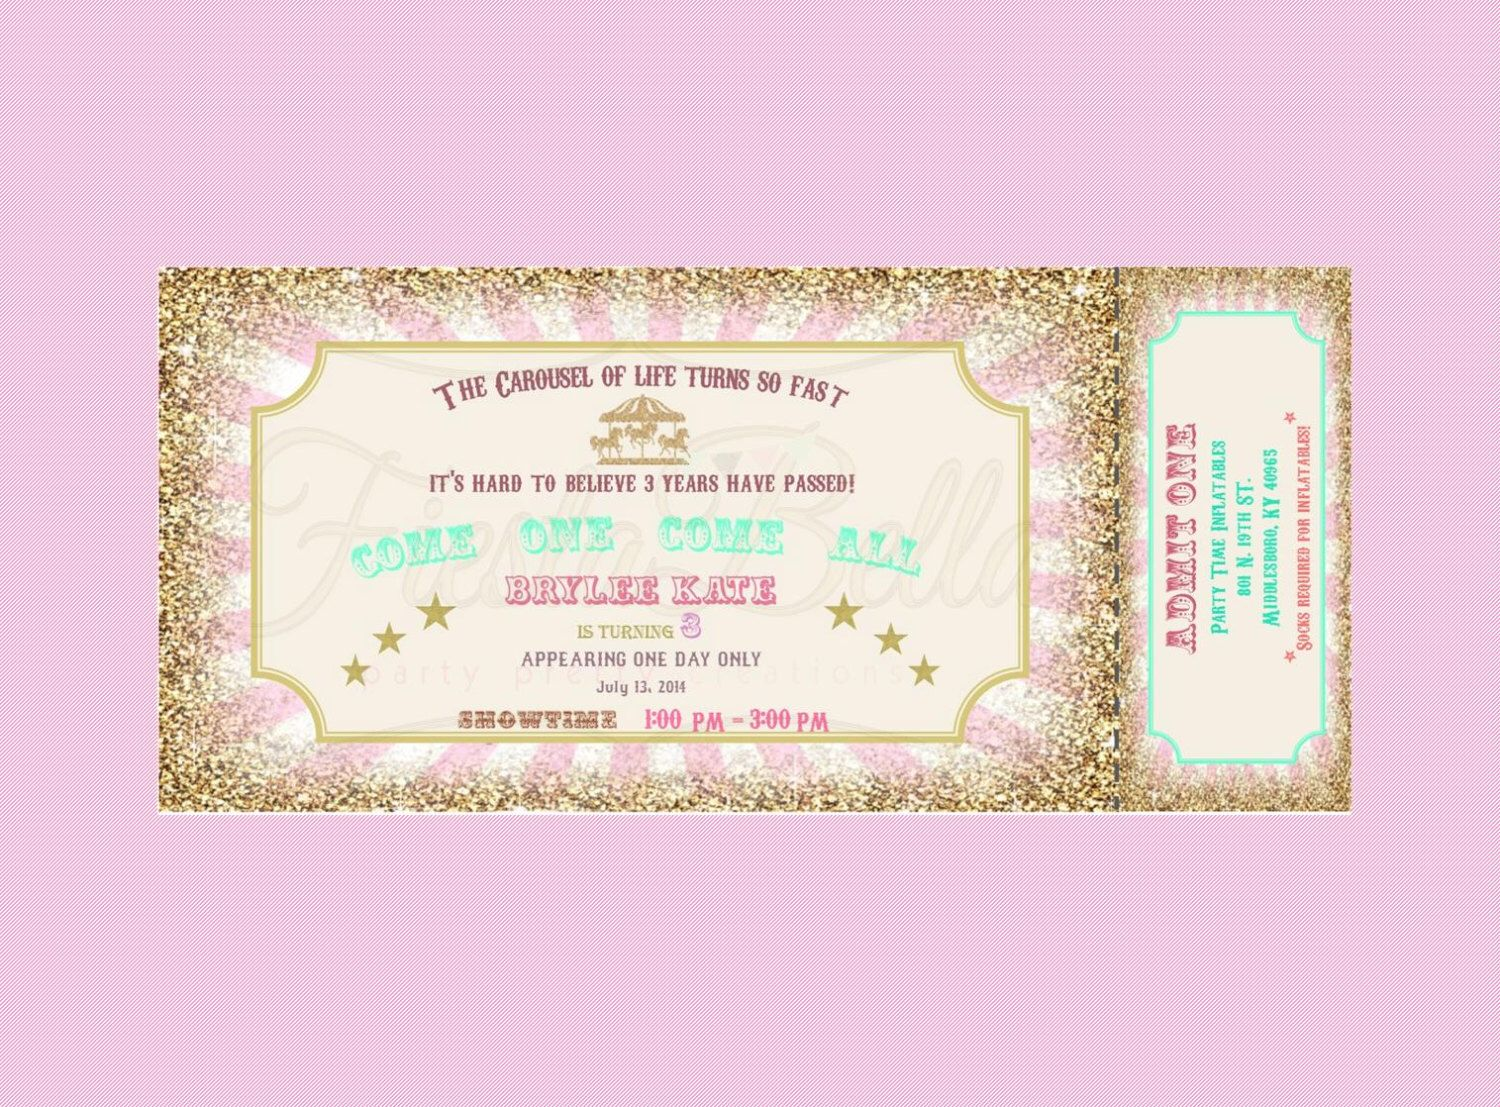 Carousel Carnival Ticket Style Invitation. Mint, Green, Pink, Gold, Bunting.  Free Printable Ticket Style Invitations